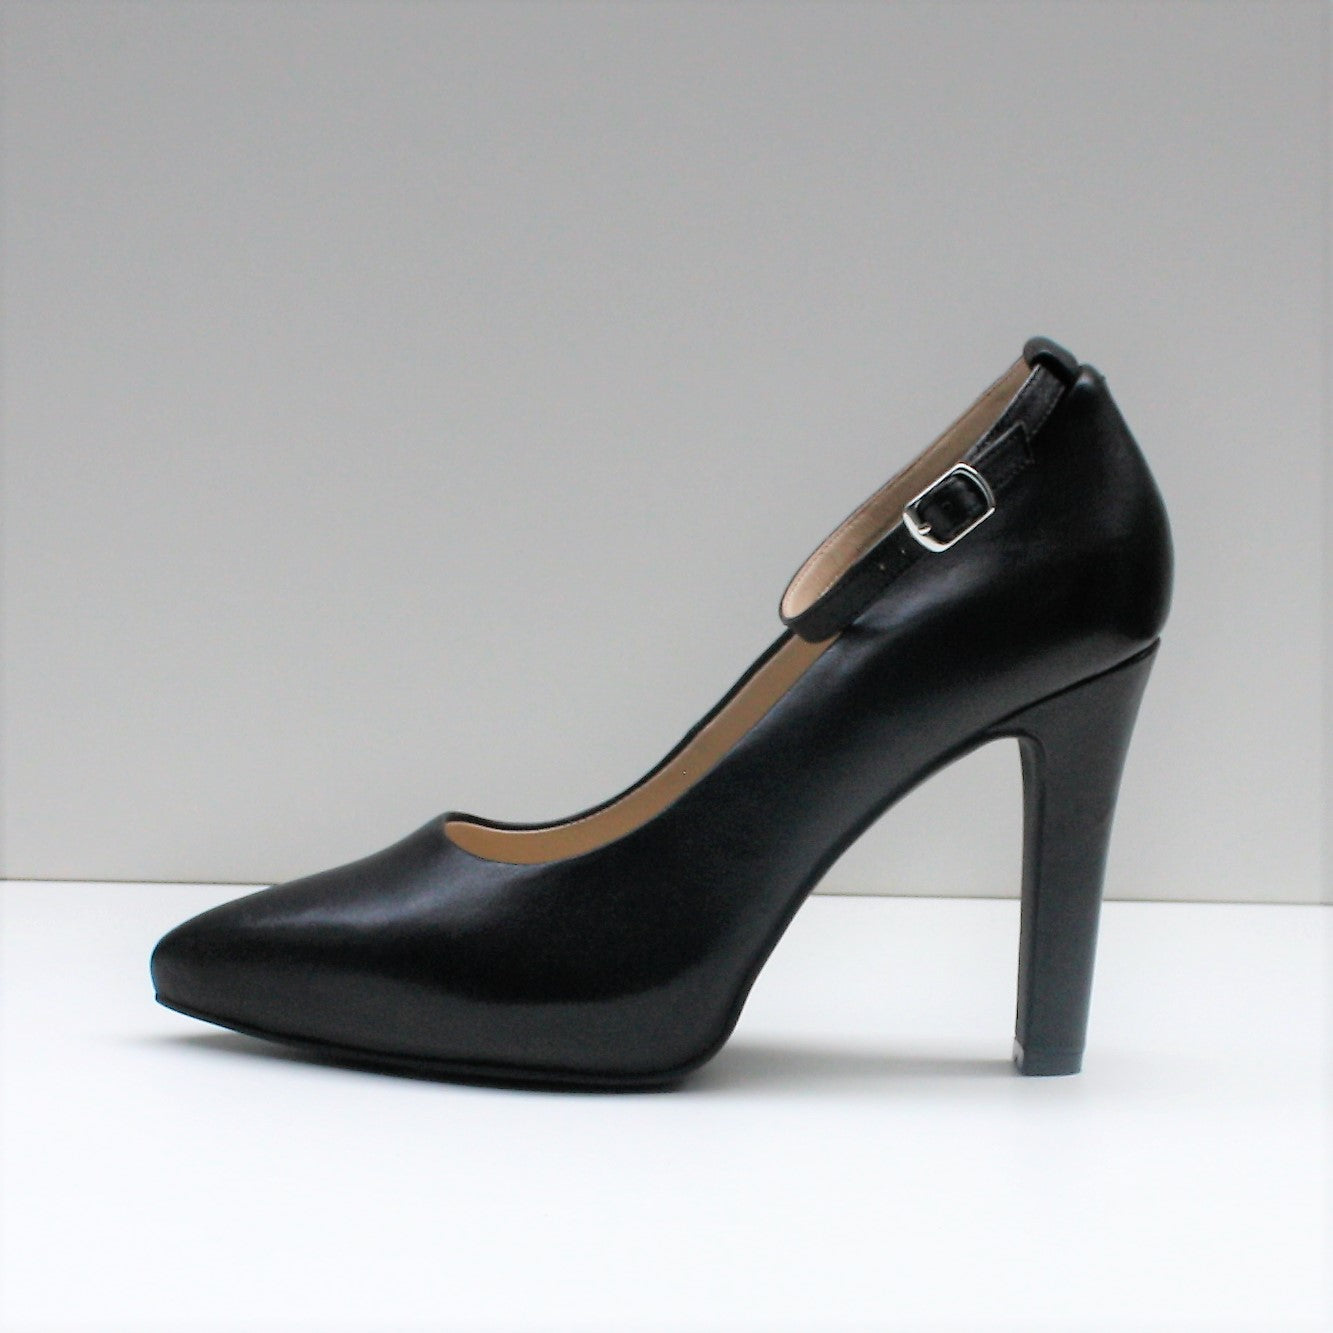 MAYA Black High Heel Pumps